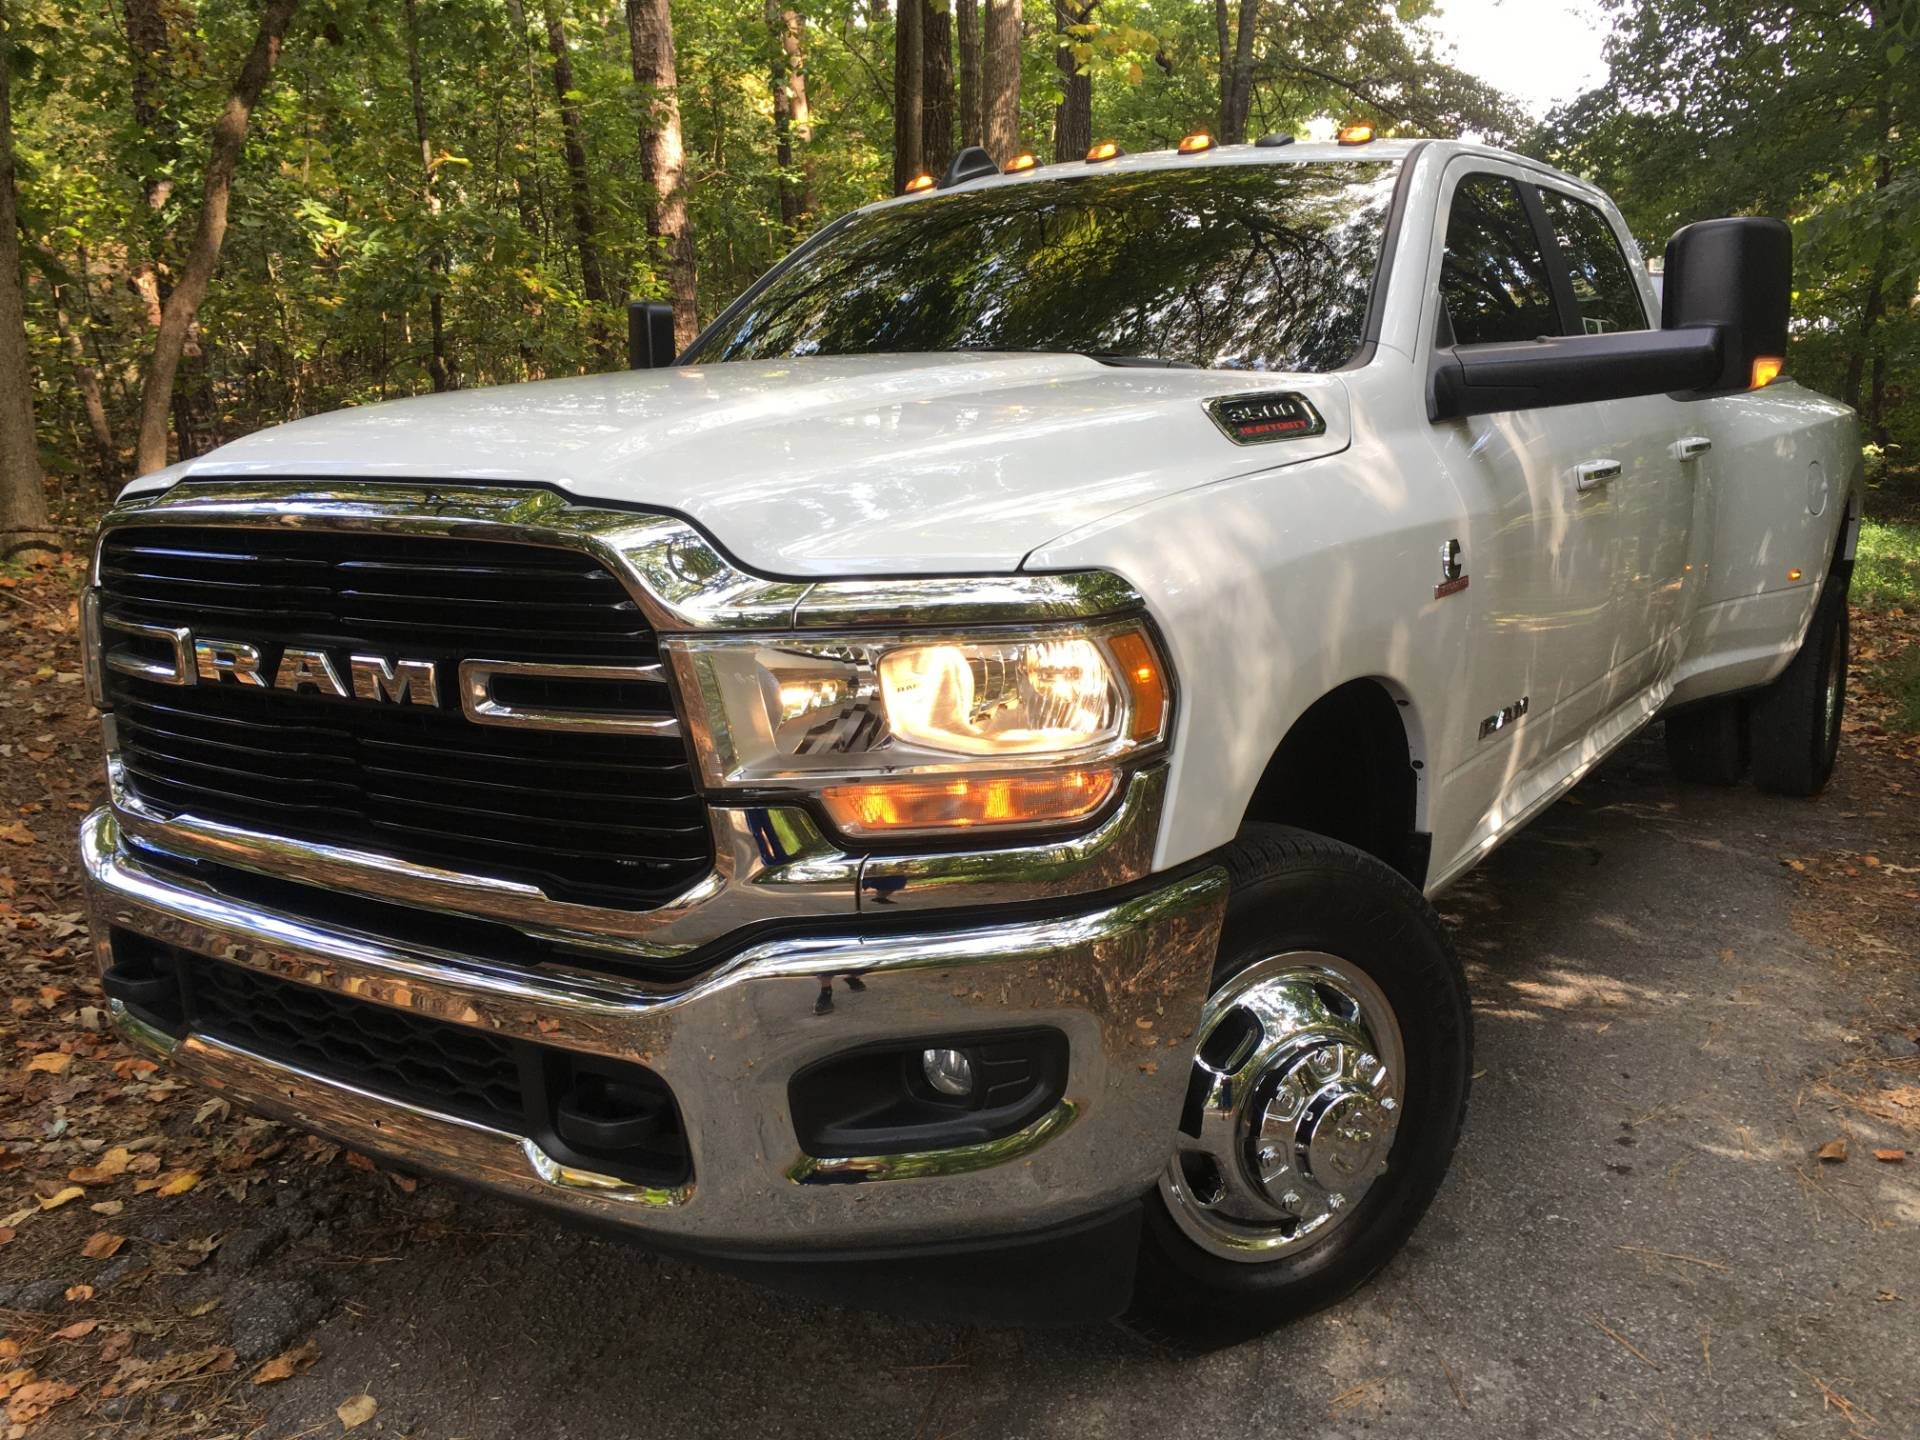 2019 DODGE RAM 3500 BIGHORN 4X4 in Woodstock, Georgia - Photo 1